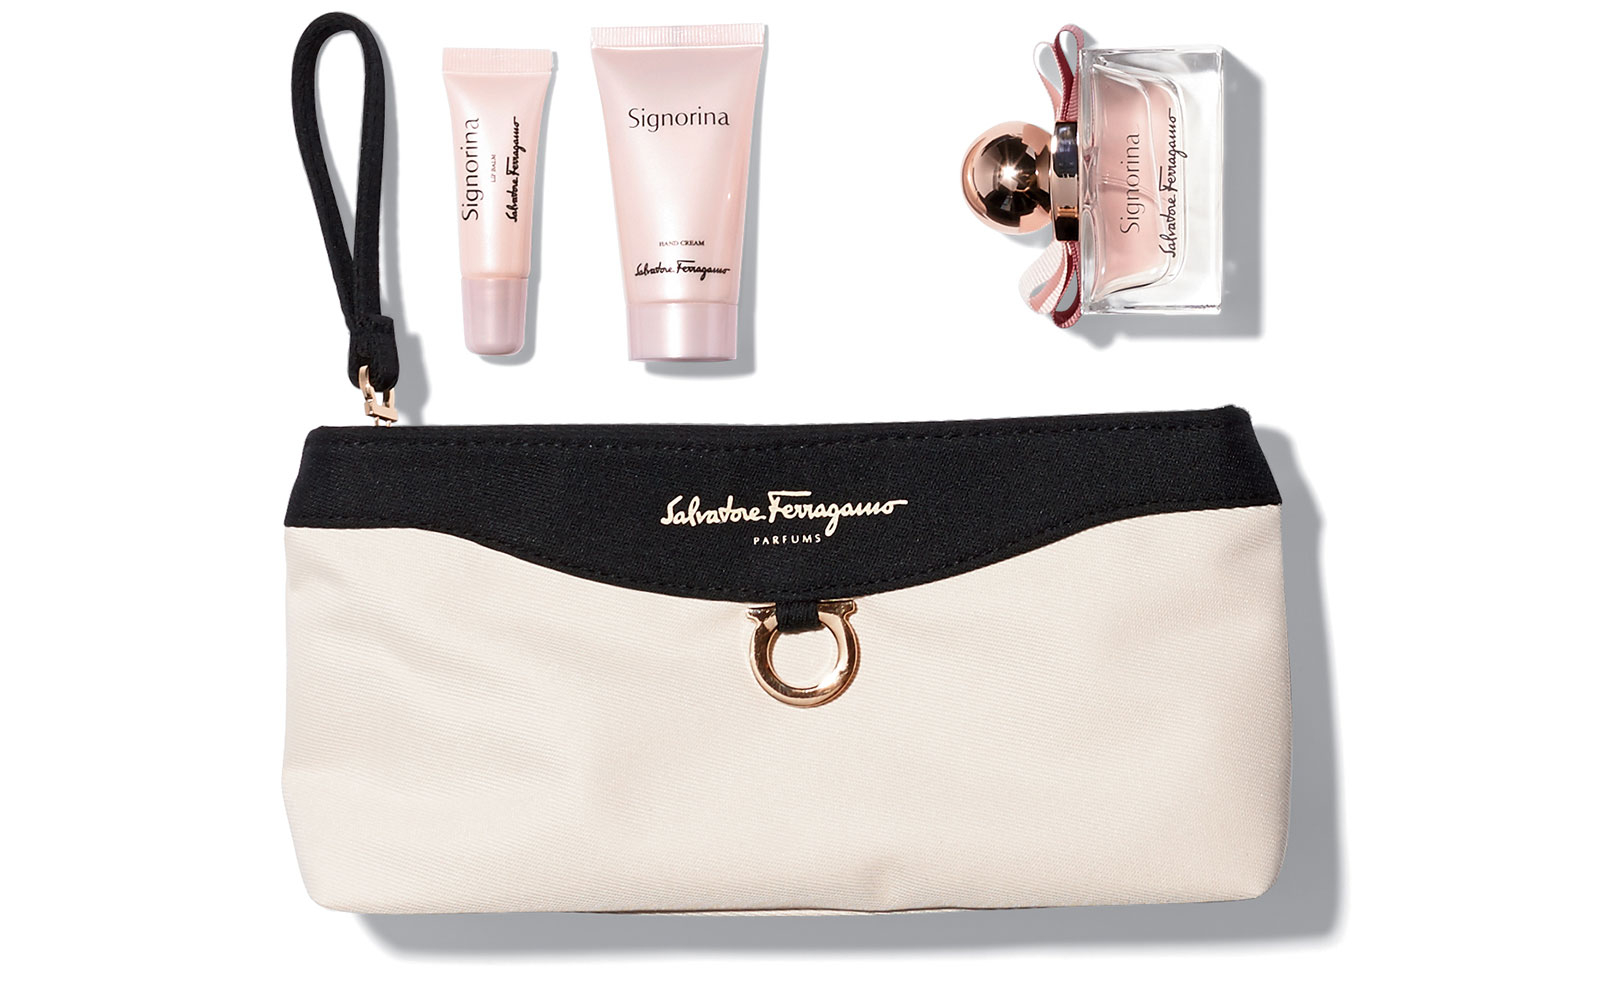 629dac7dbec7 Singapore Airlines  First Class Ferragamo Amenity Kits